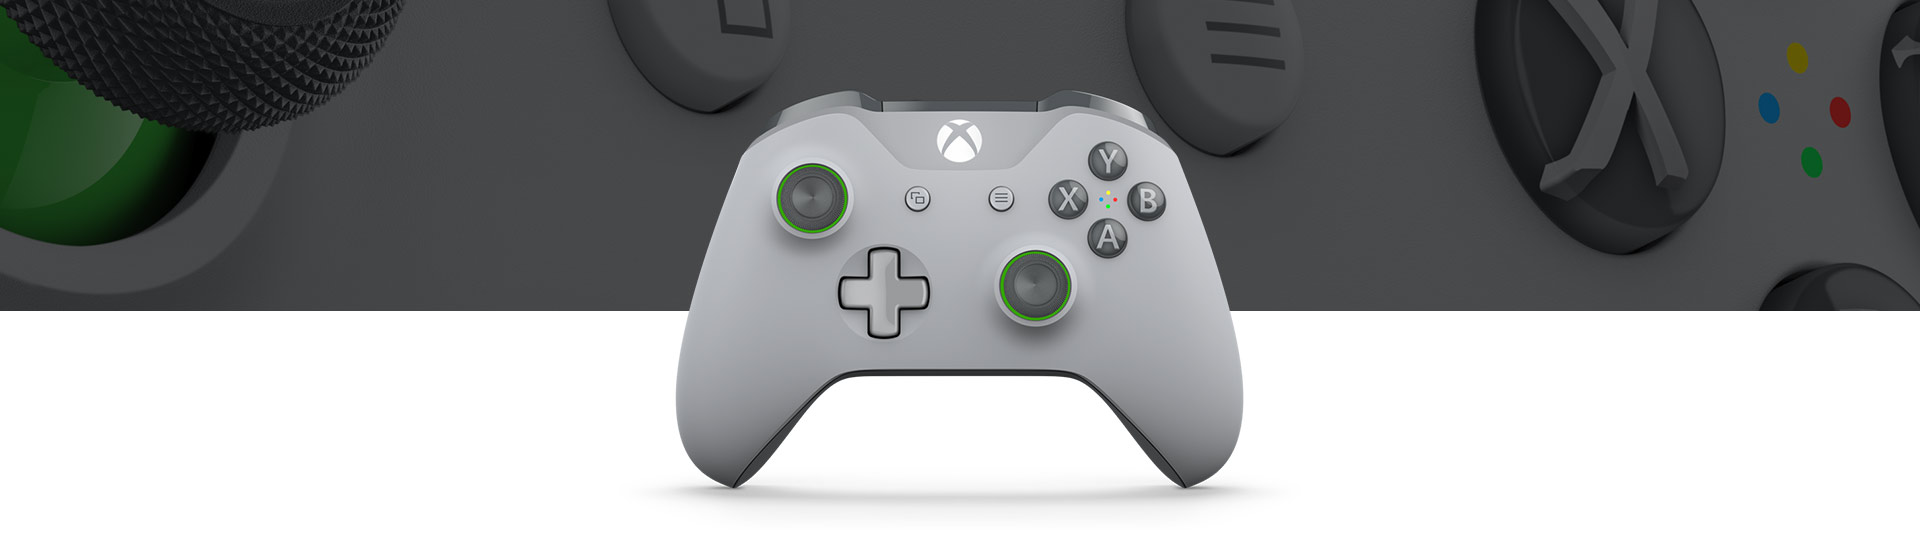 Xbox Wireless Controller – Grau/Grün